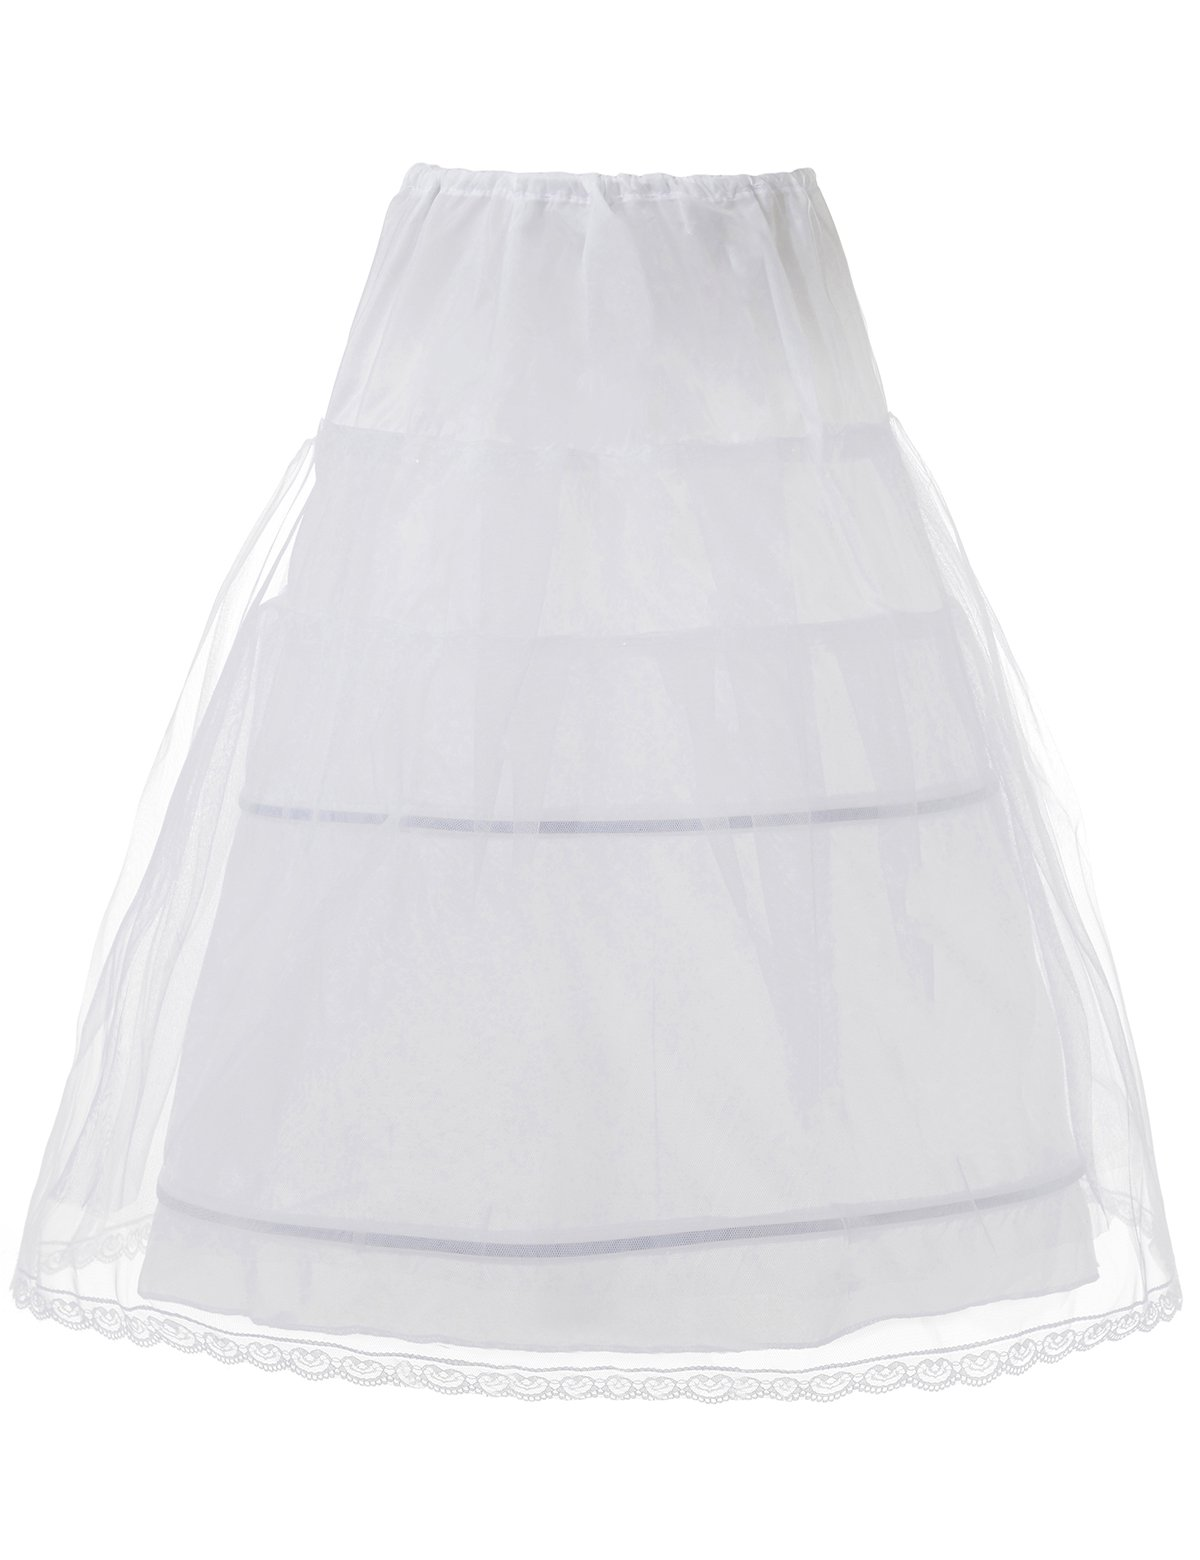 Remedios Kids Crinoline Petticoat Flower Girl Wedding Underskirt Slip, one size White